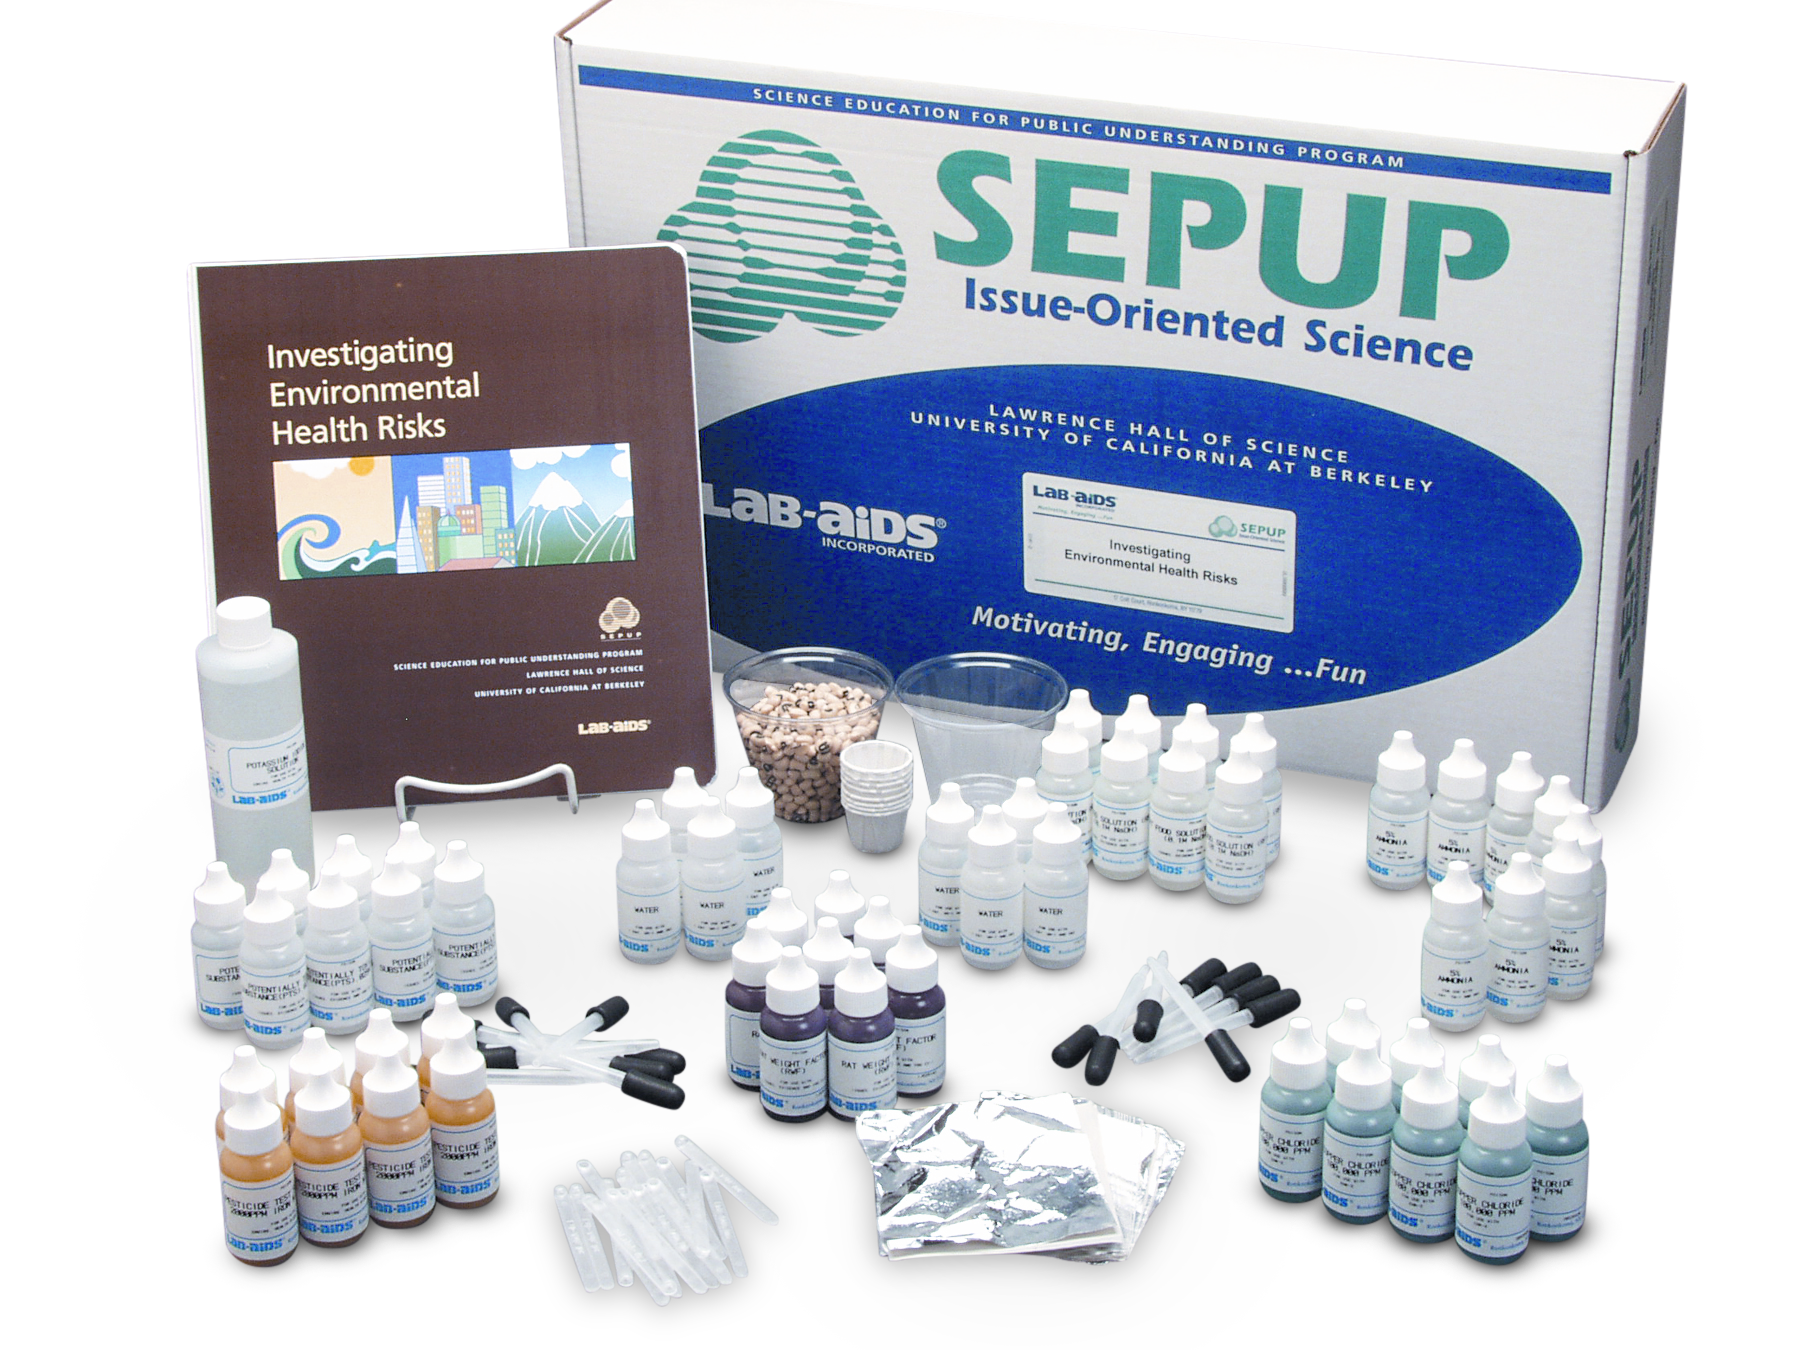 Investigating Environmental Health Risks (Developed by SEPUP)